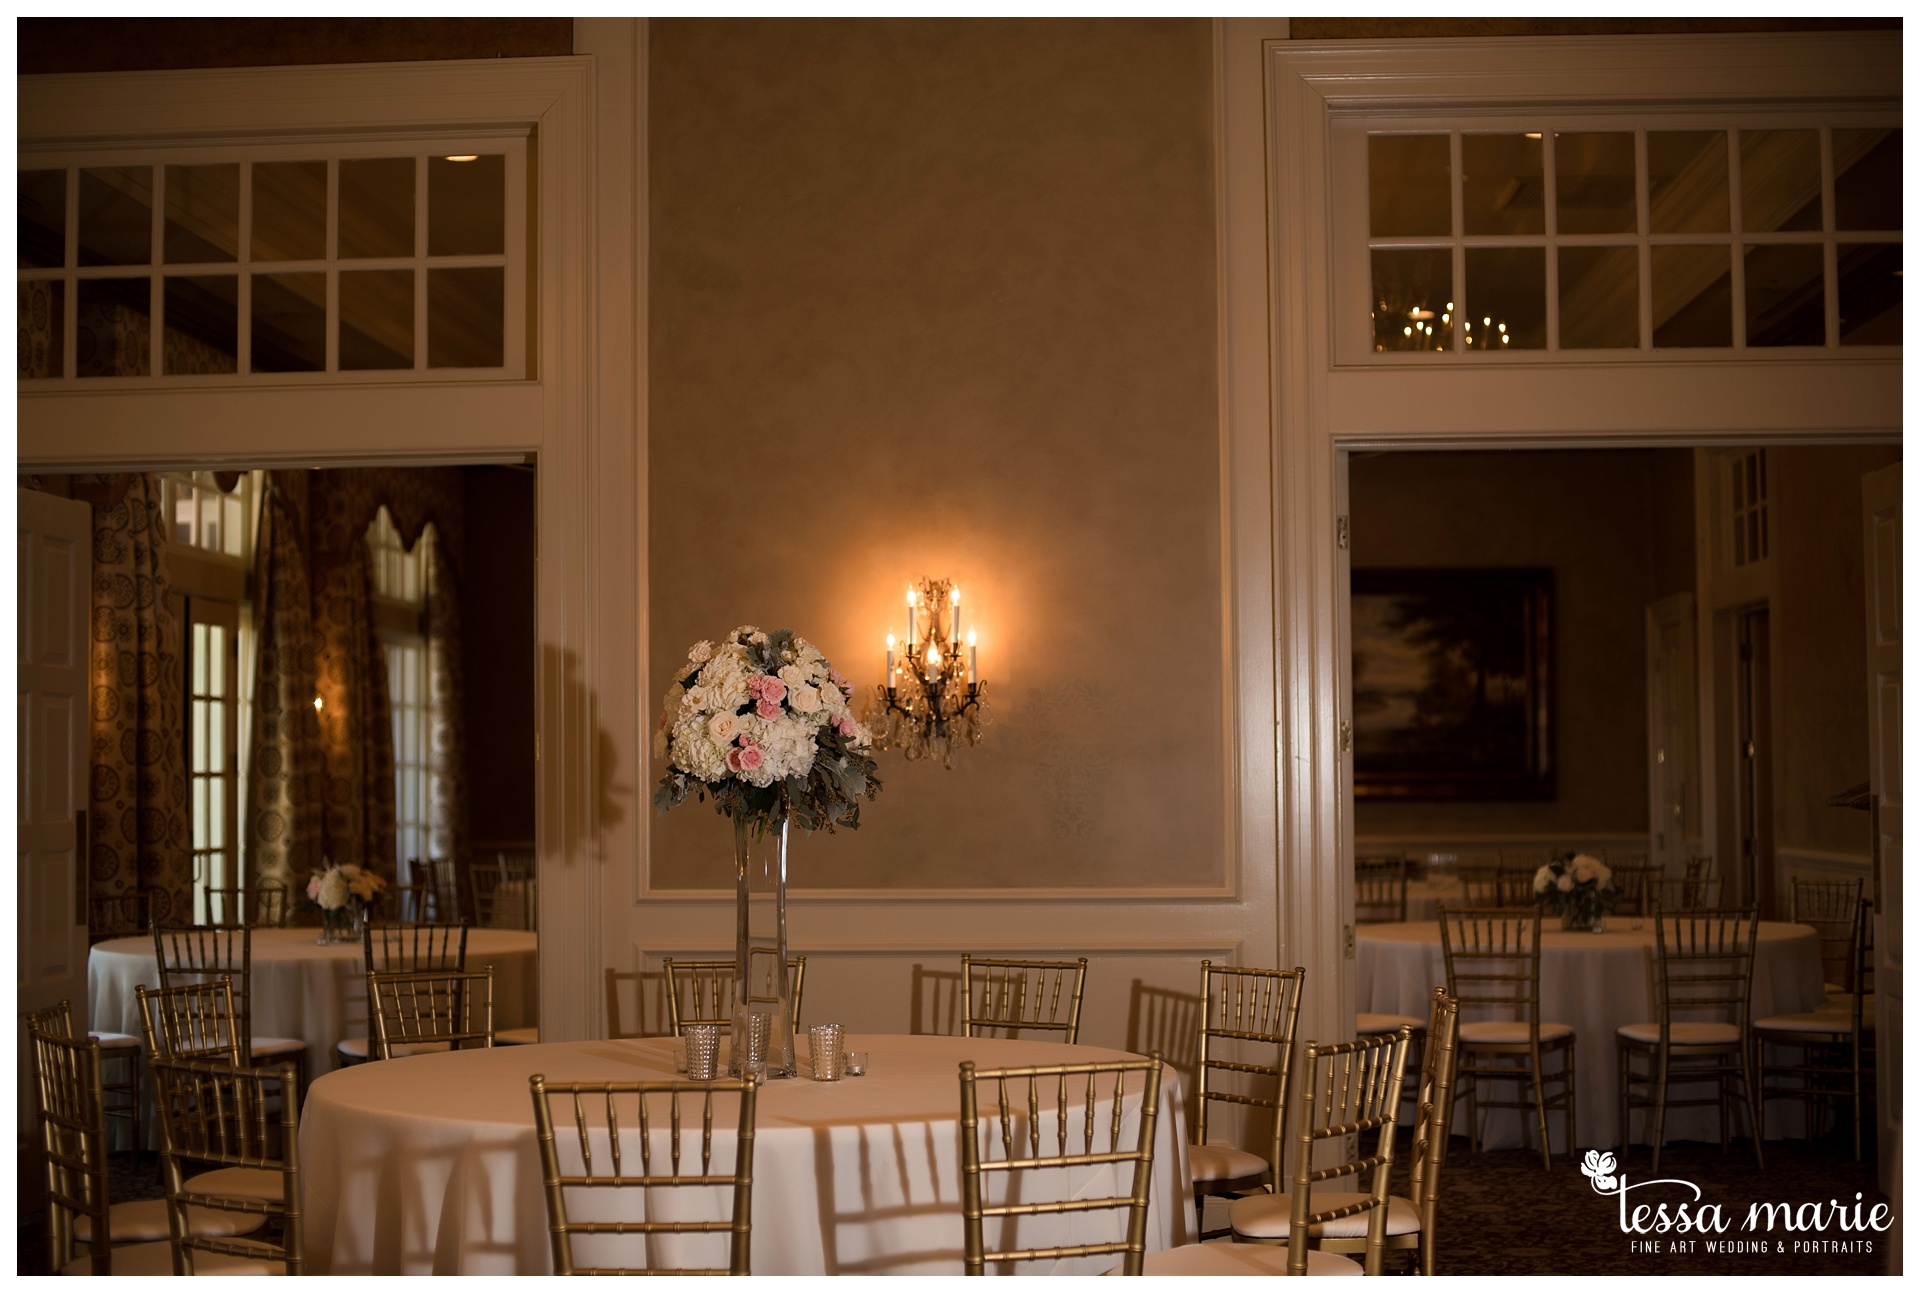 tessa_marie_weddings_legacy_story_focused_wedding_pictures_atlanta_wedding_photographer_0141